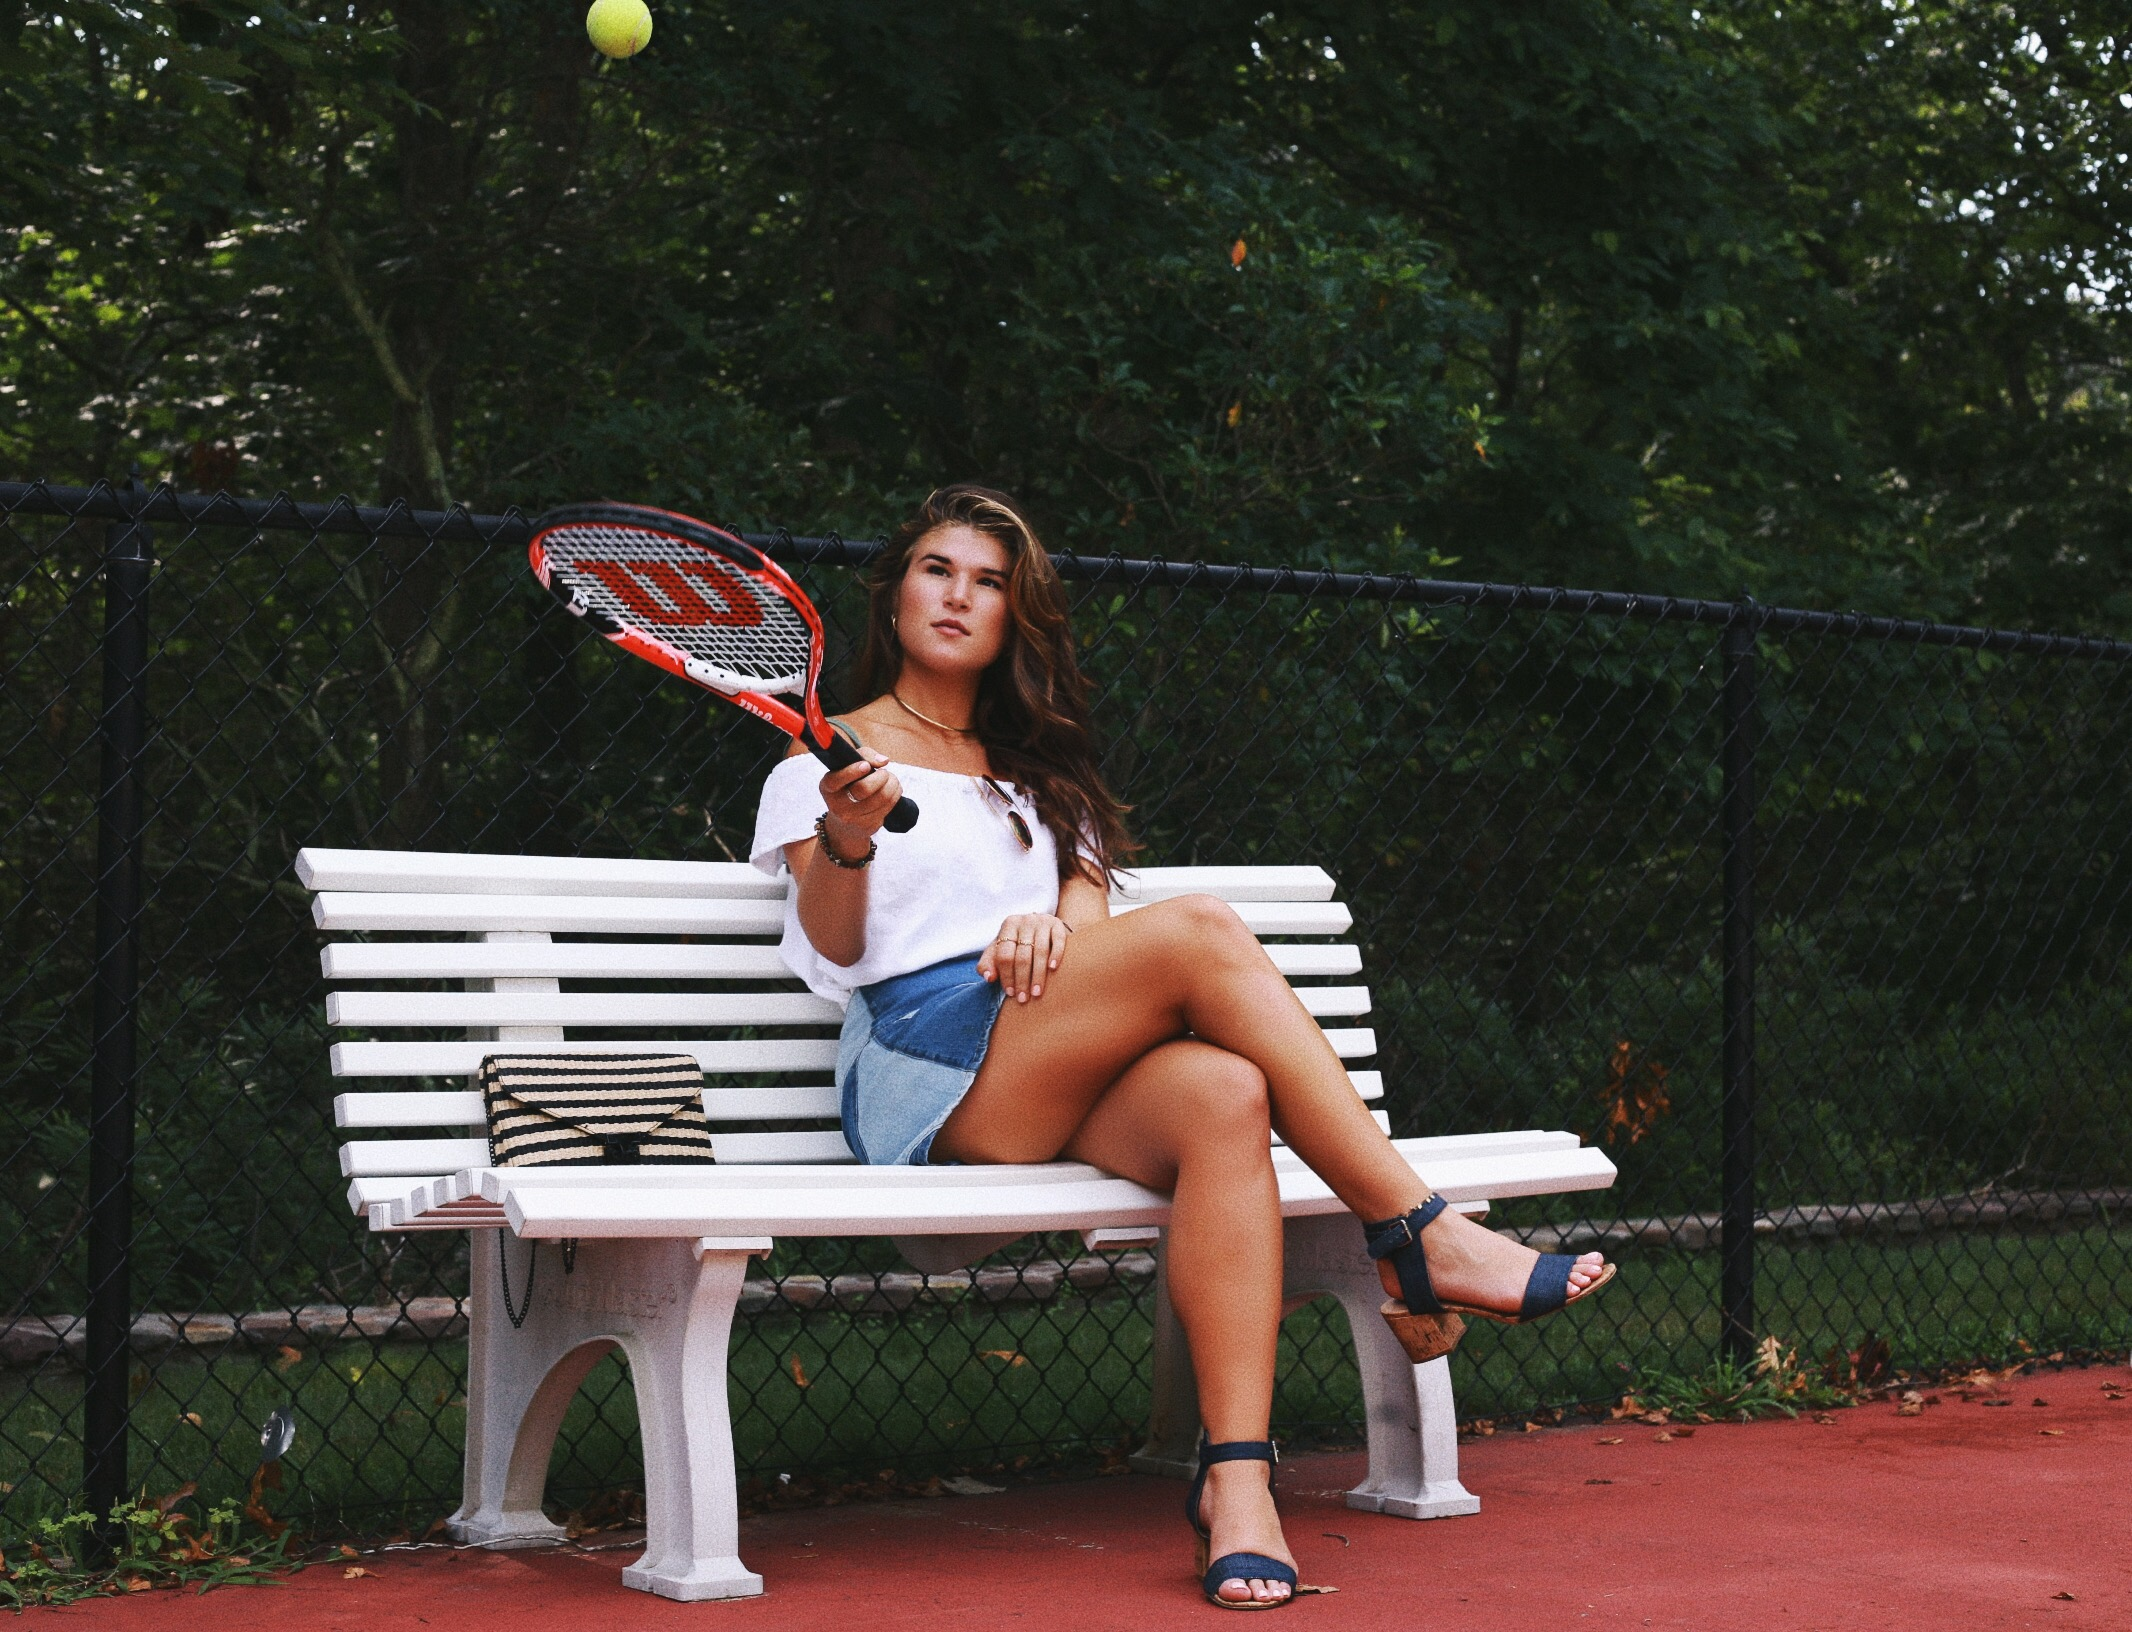 nikki hirst tennis in the hamptons